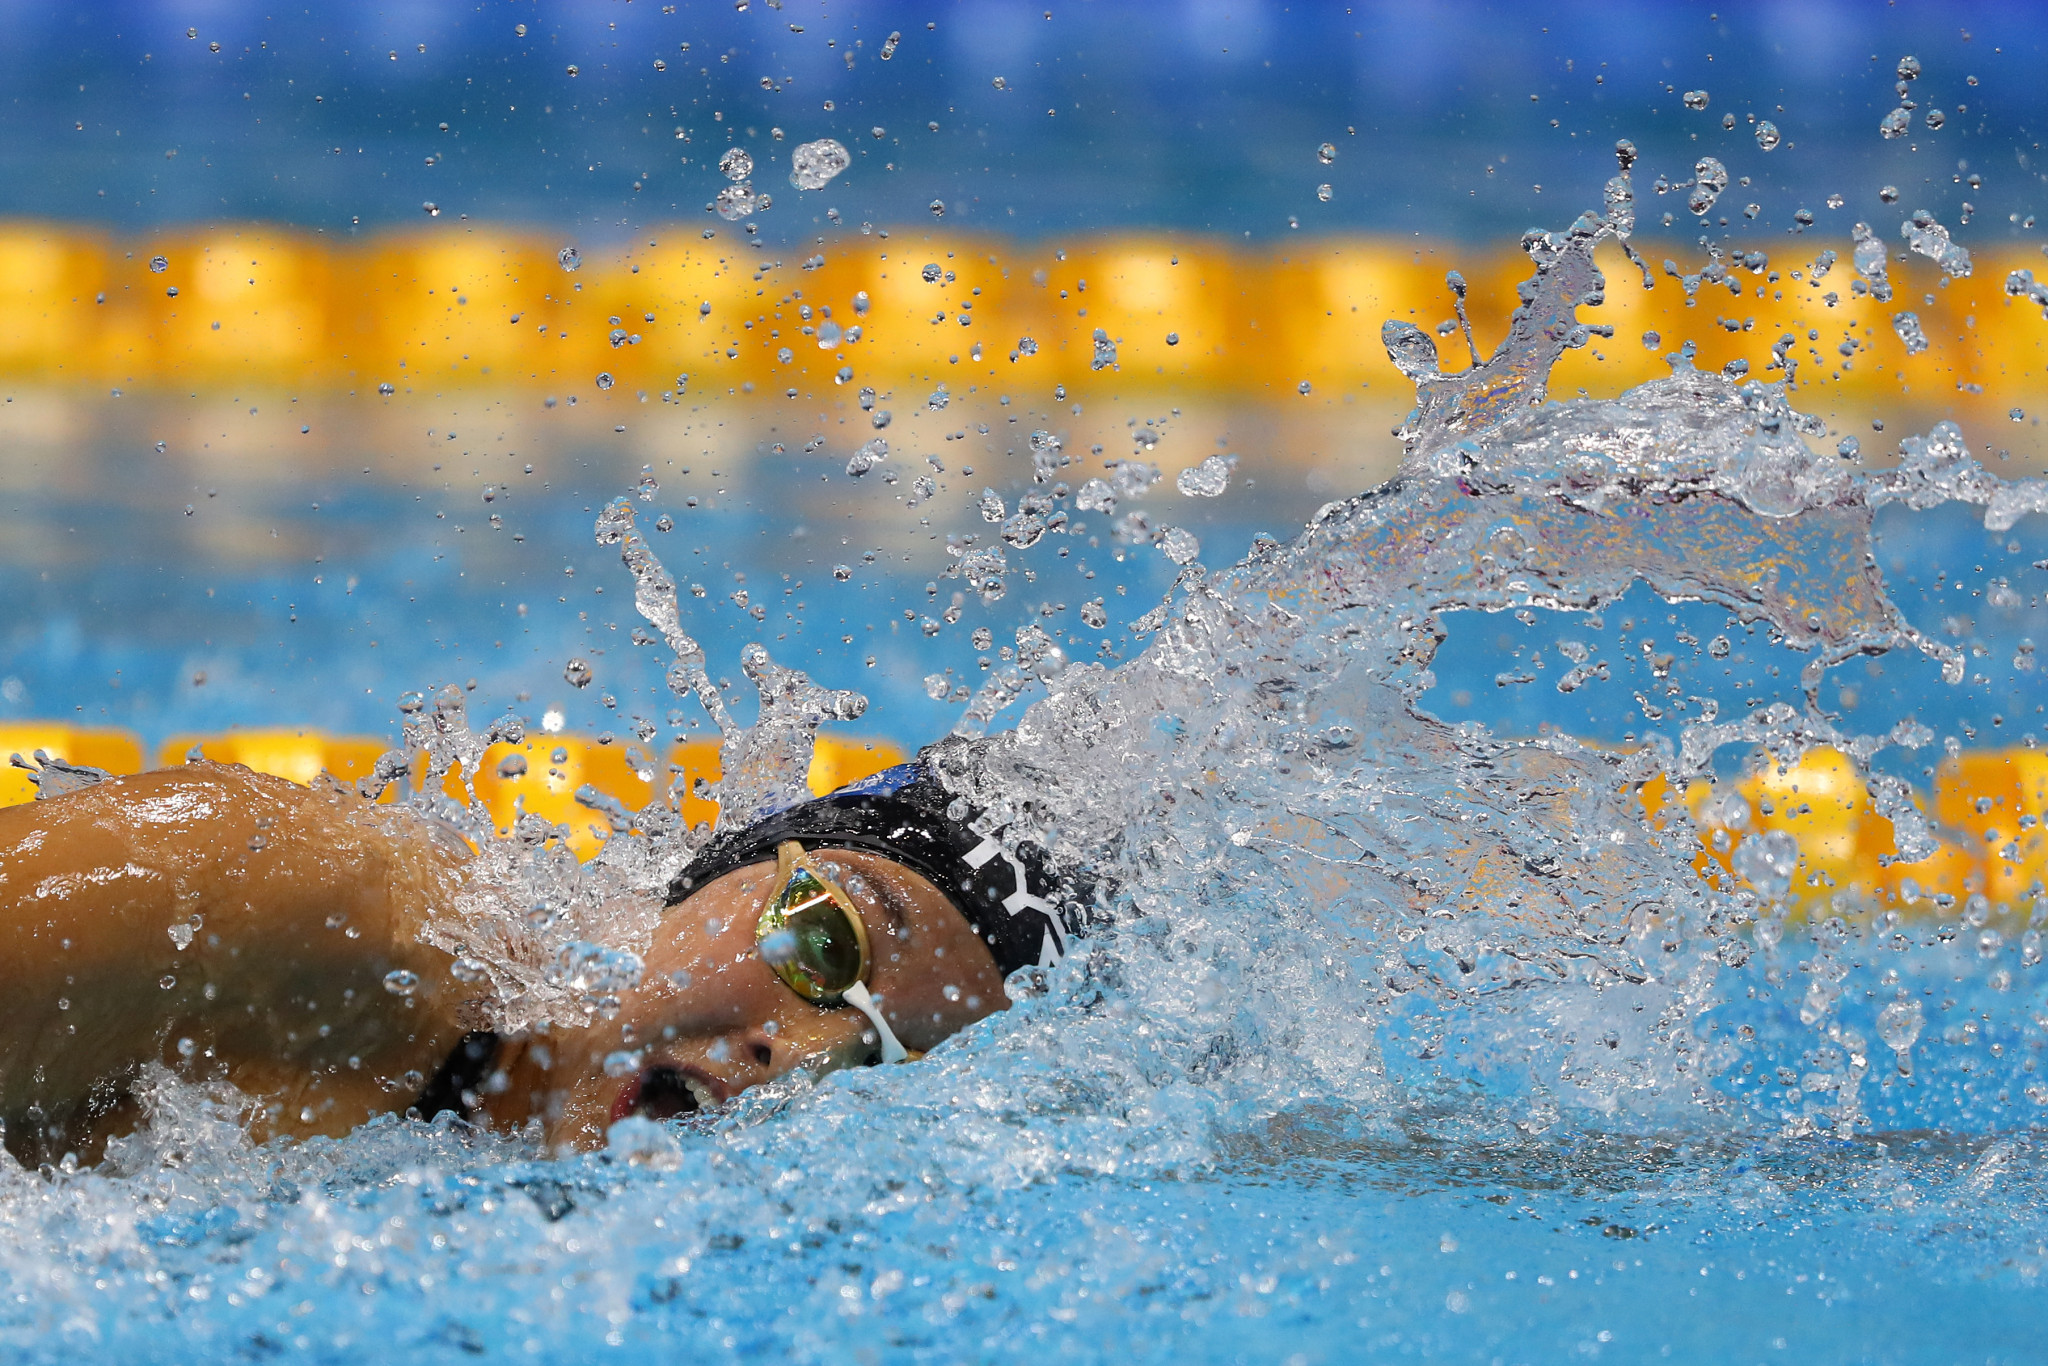 Tai and Barlaam continue record-breaking start to World Para Swimming Championships